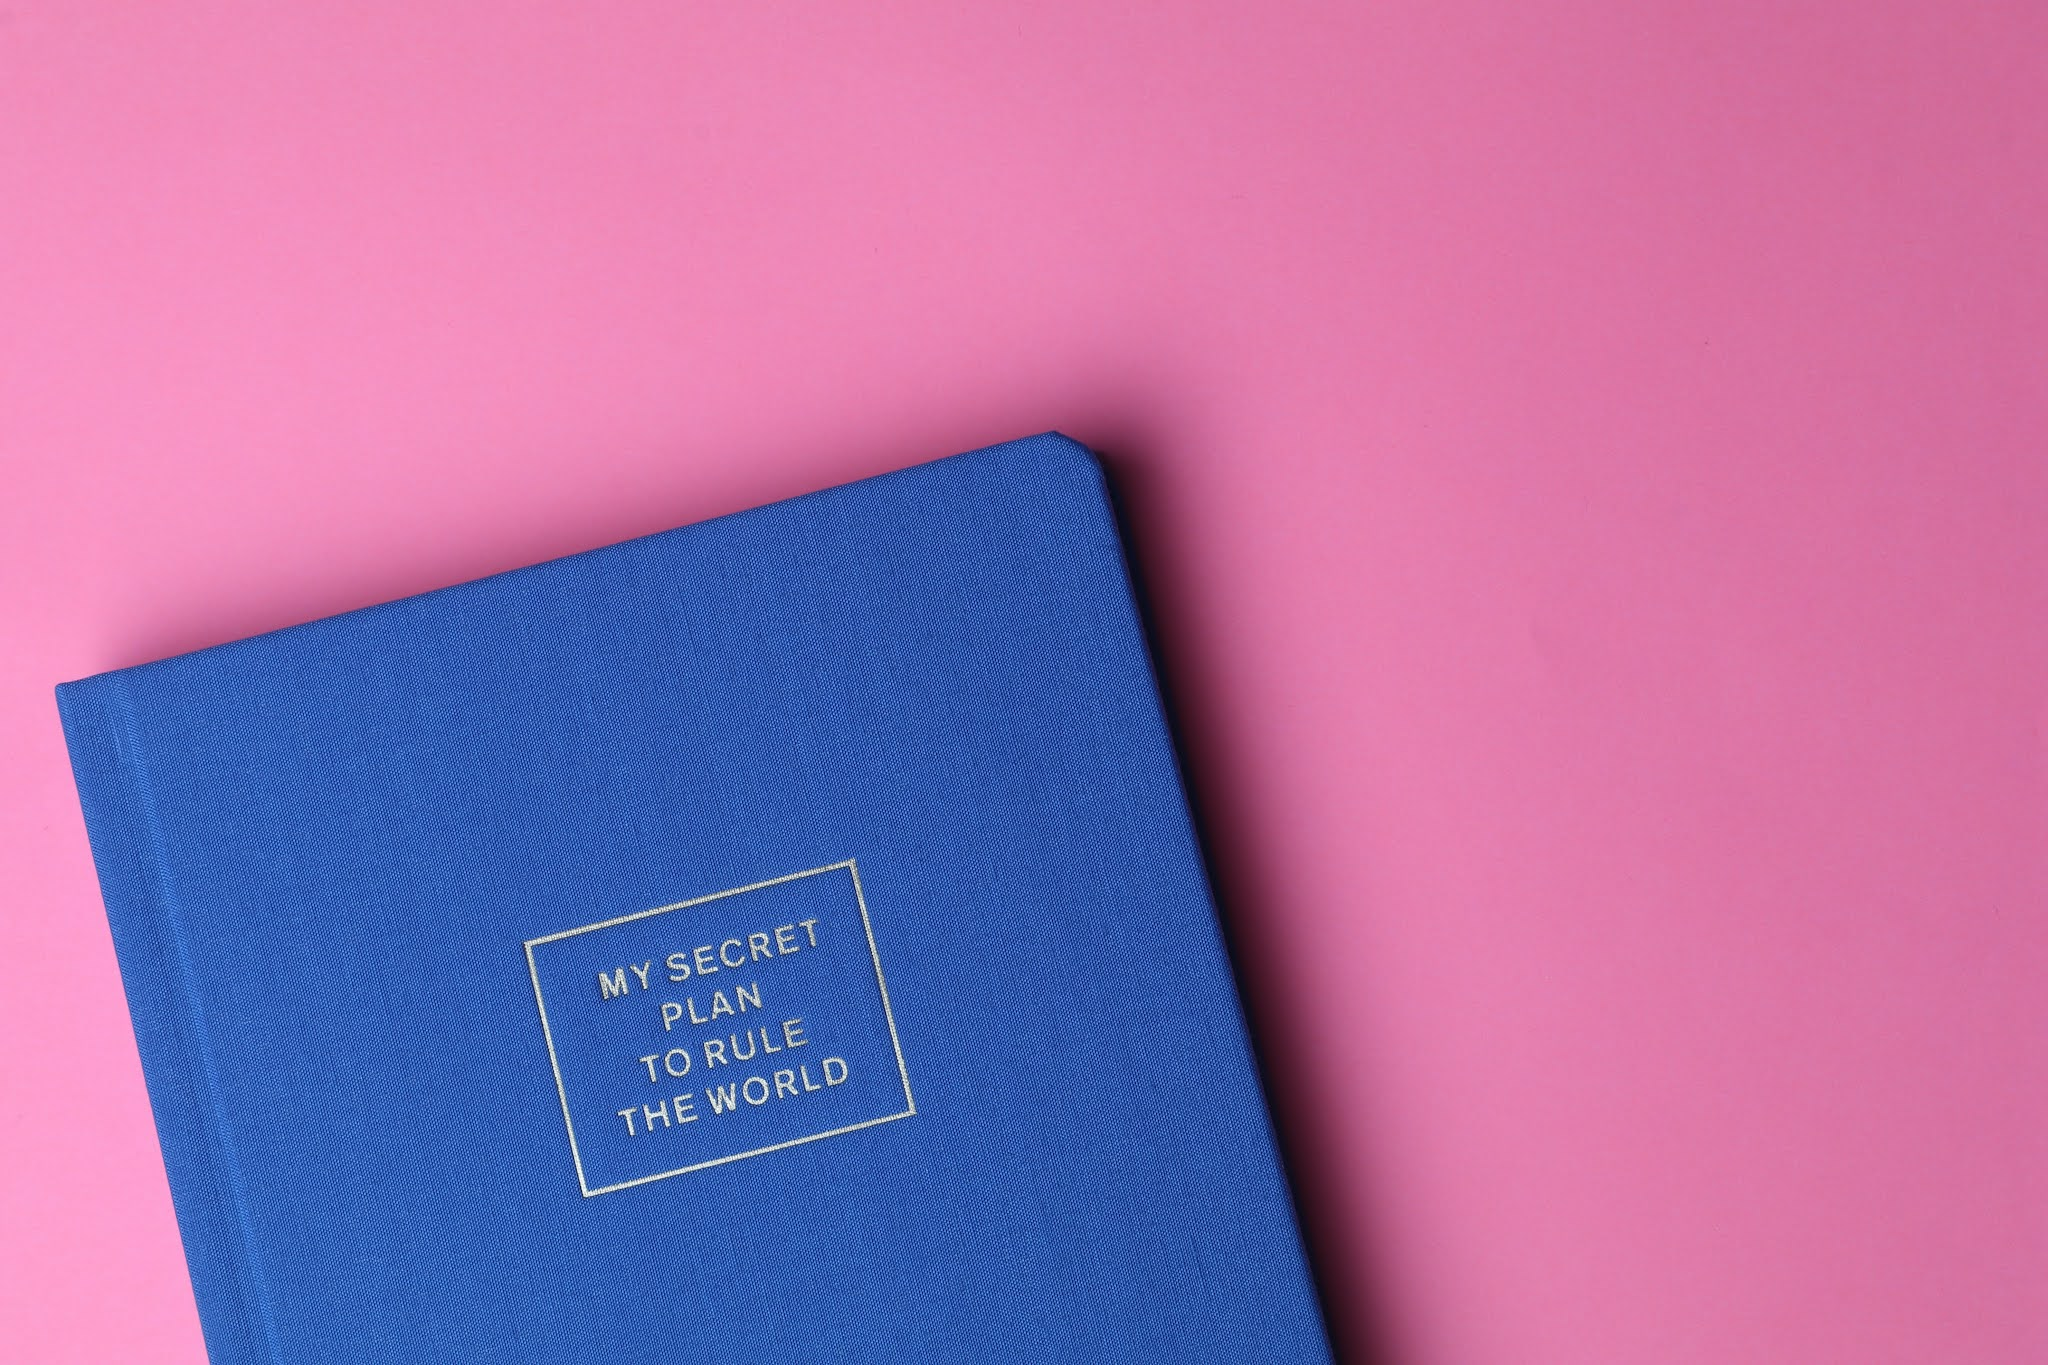 Journal with title 'my secret plan to rule the world' on cover